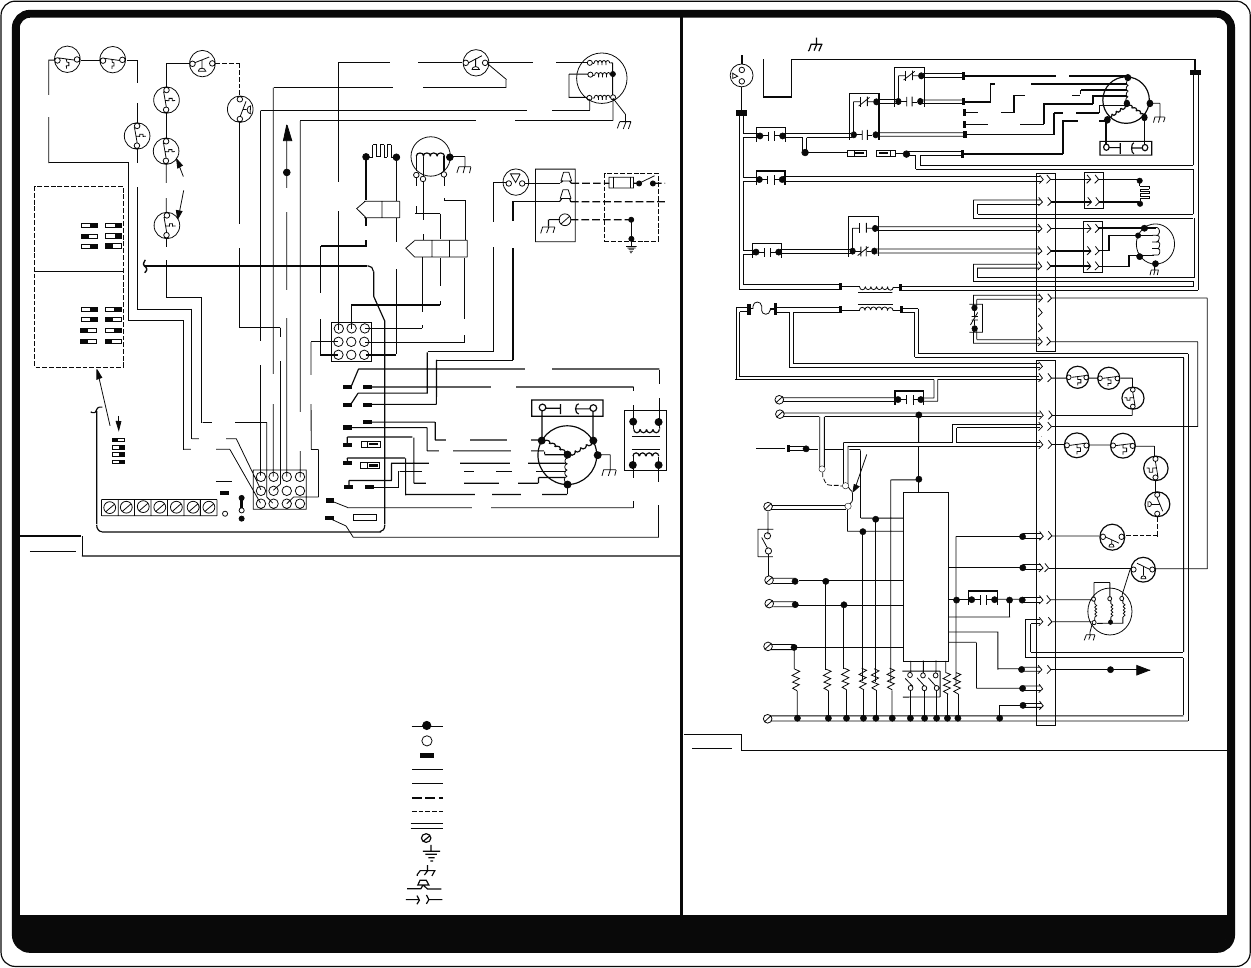 c2b73d22 c45f 43df a574 b6e707ea0cc7 bg8 power flame wiring diagram power flame burners wiring diagrams honeywell pressure switch wiring diagram at sewacar.co